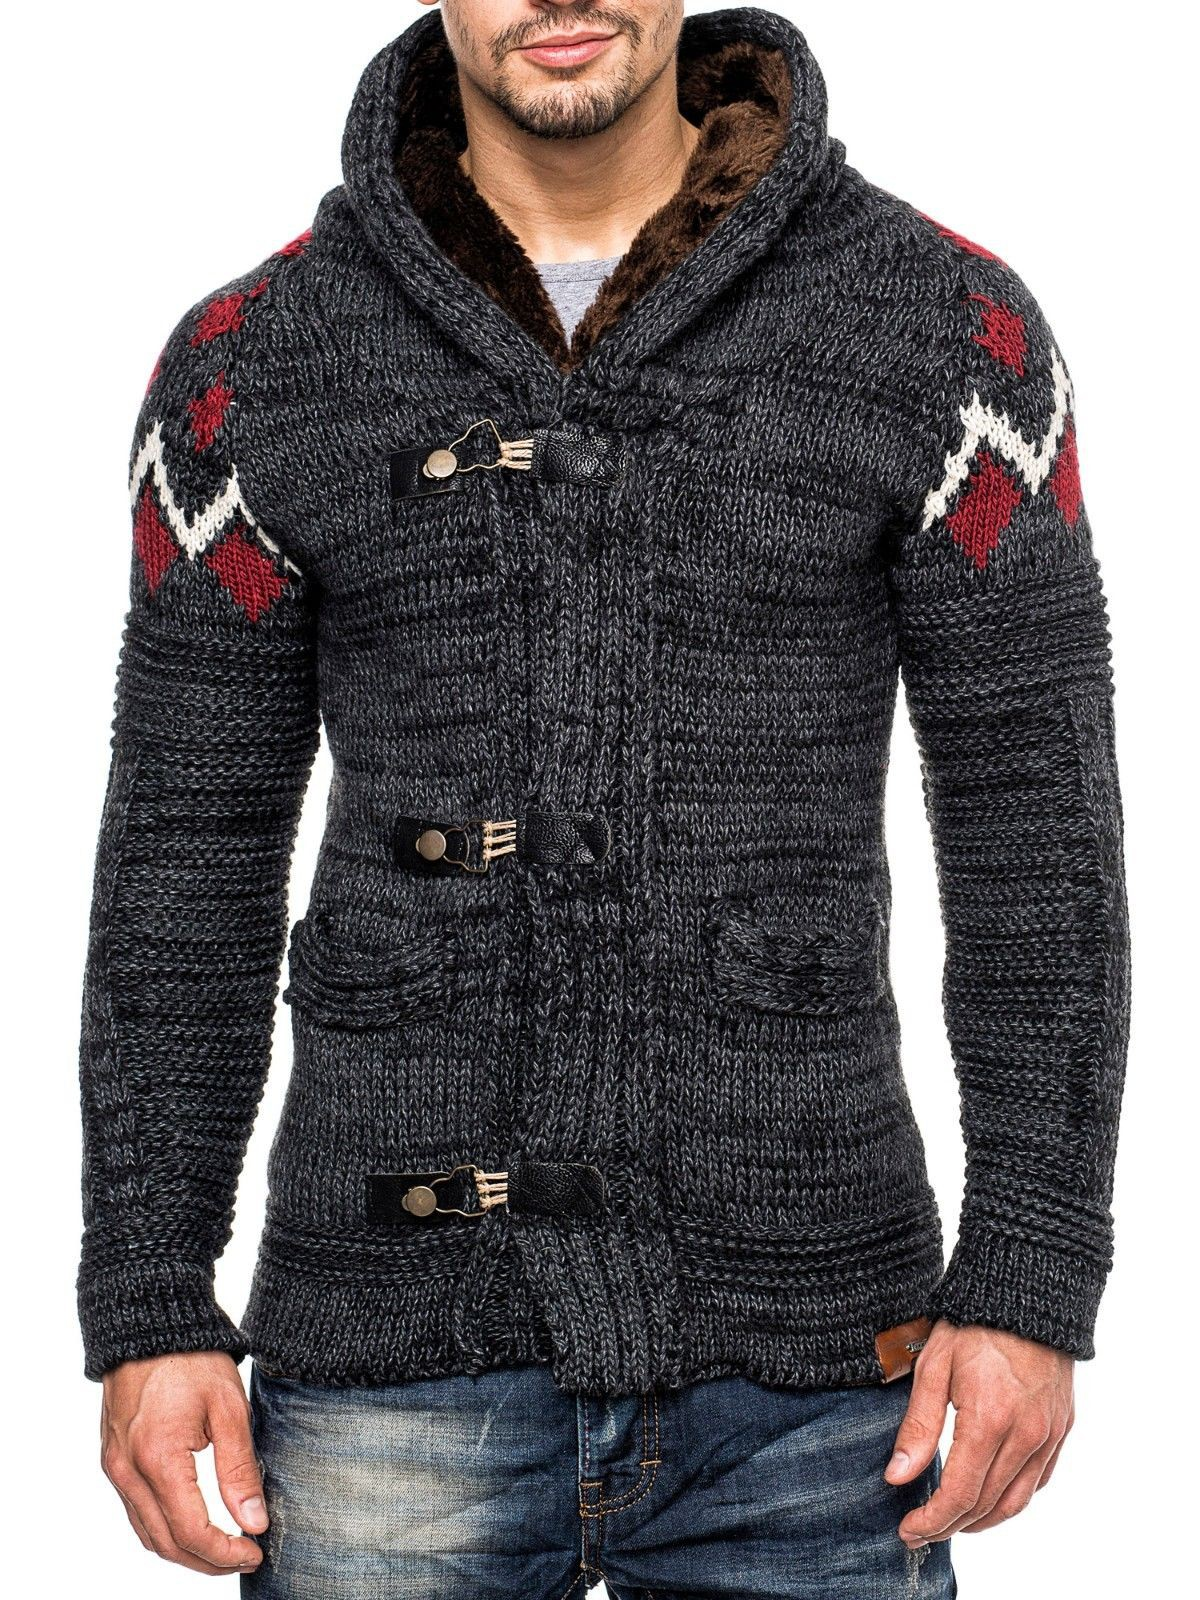 tazzio herren pullover strickjacke norweger tz 421 winter grobstrick jacke pulli ebay. Black Bedroom Furniture Sets. Home Design Ideas